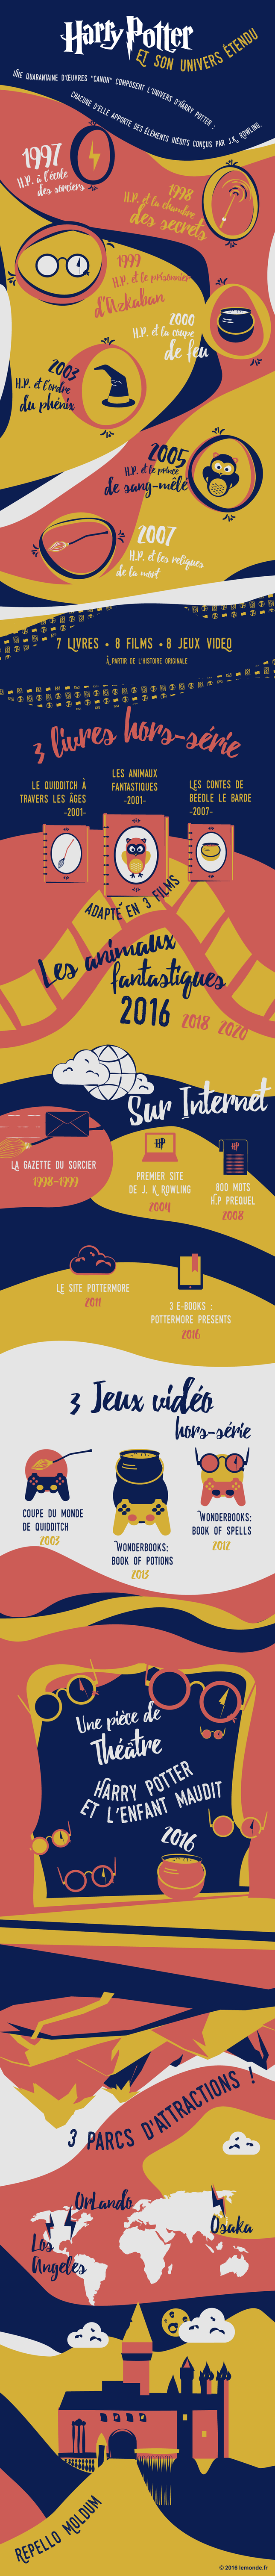 infographie hp